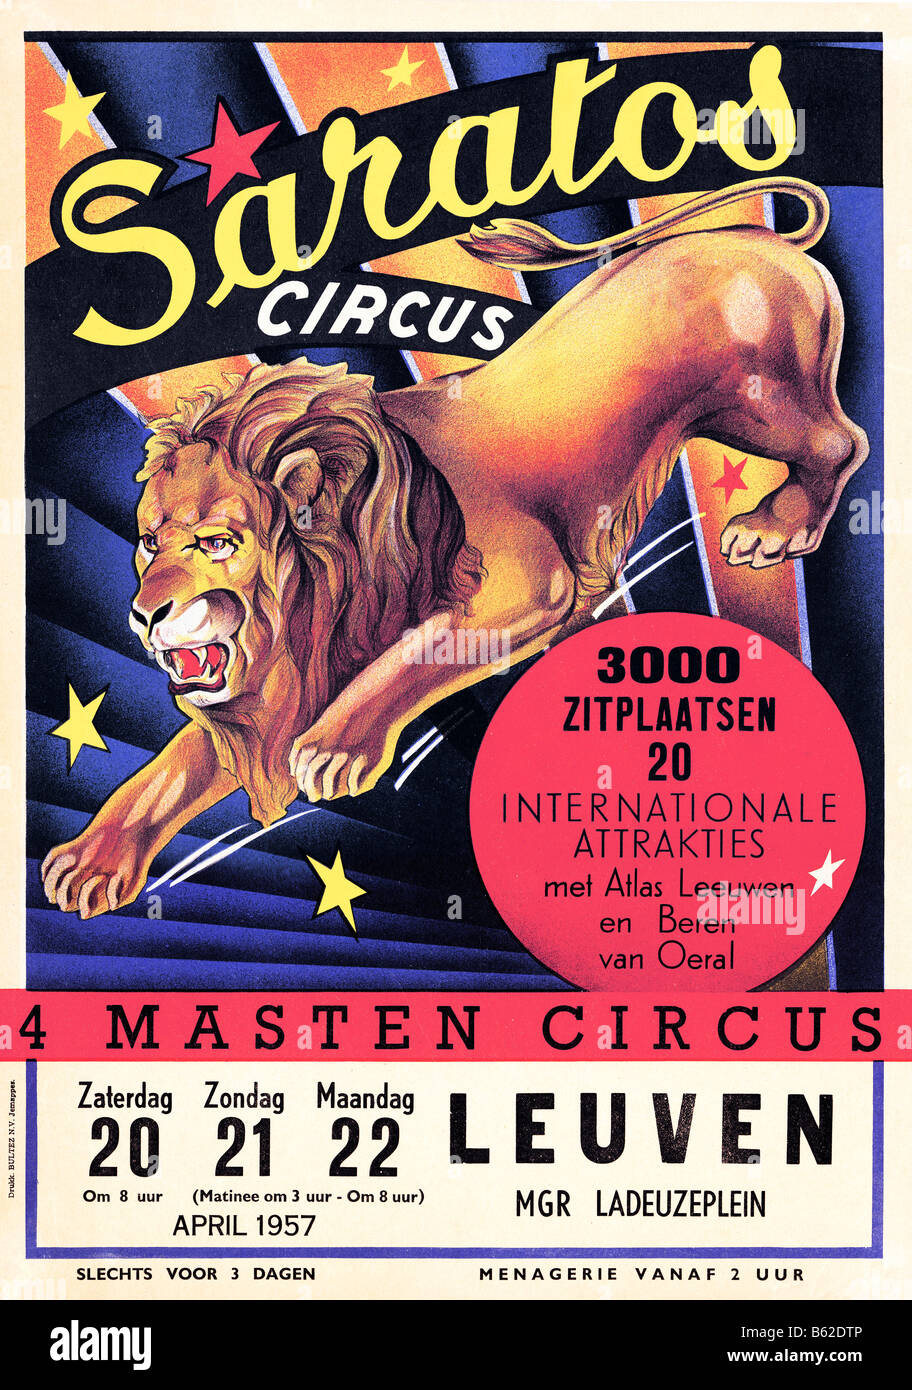 Saratos Circus 1950s poster for the visit of the Belgian circus and menagerie to the city of Leuven - Stock Image